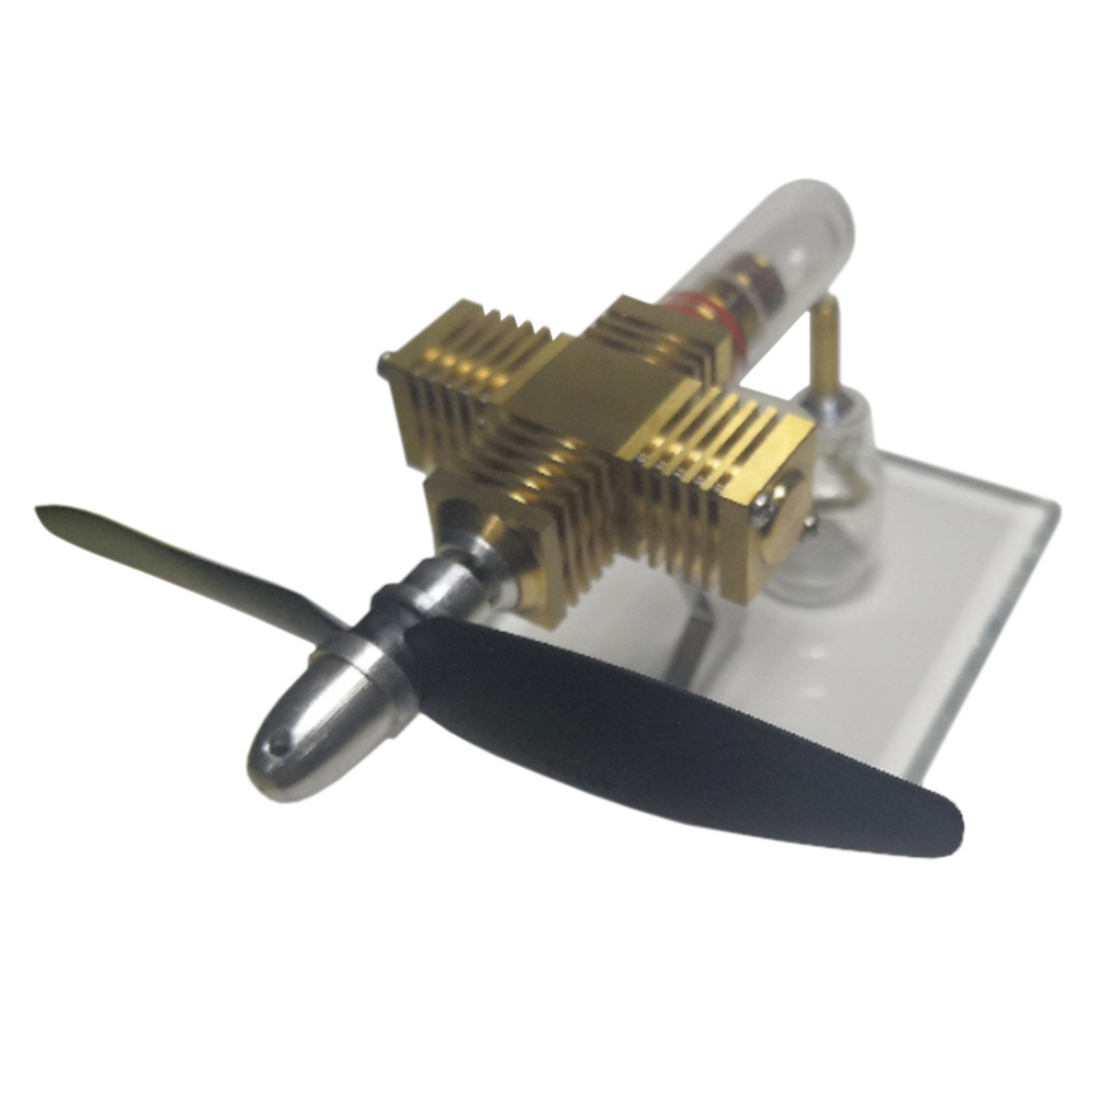 Propeller Aircraft Head Shape Stirling Pocket Engine Model Toy for Developing Intelligence Model Buiding